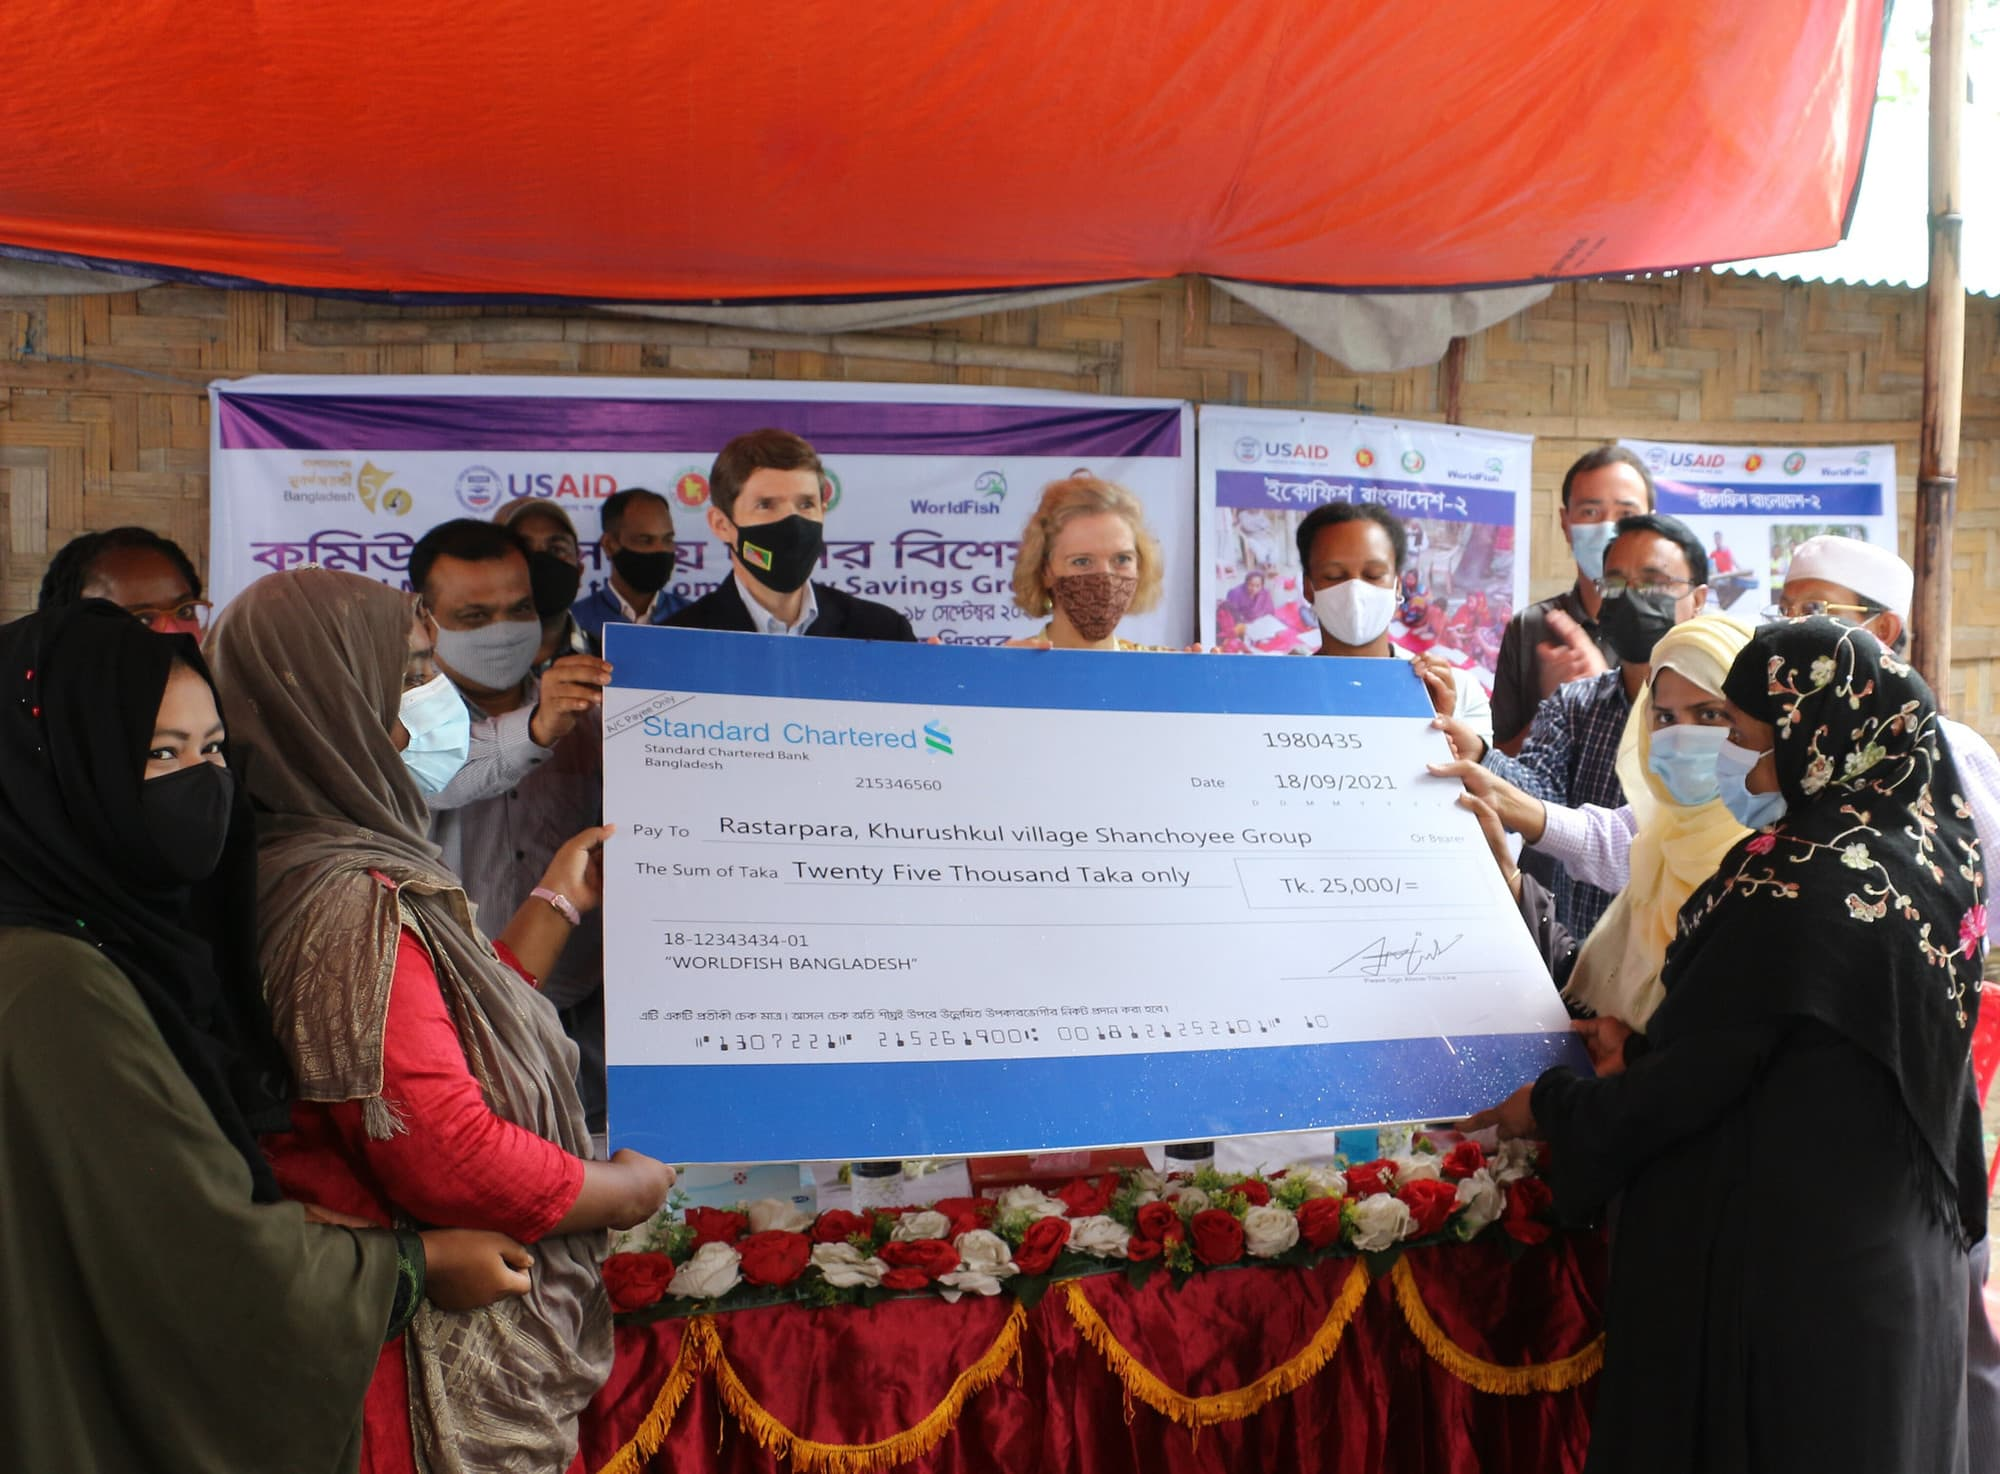 Community savings groups (CSG) receive matching grants. Photo by Md. Asaduzzaman